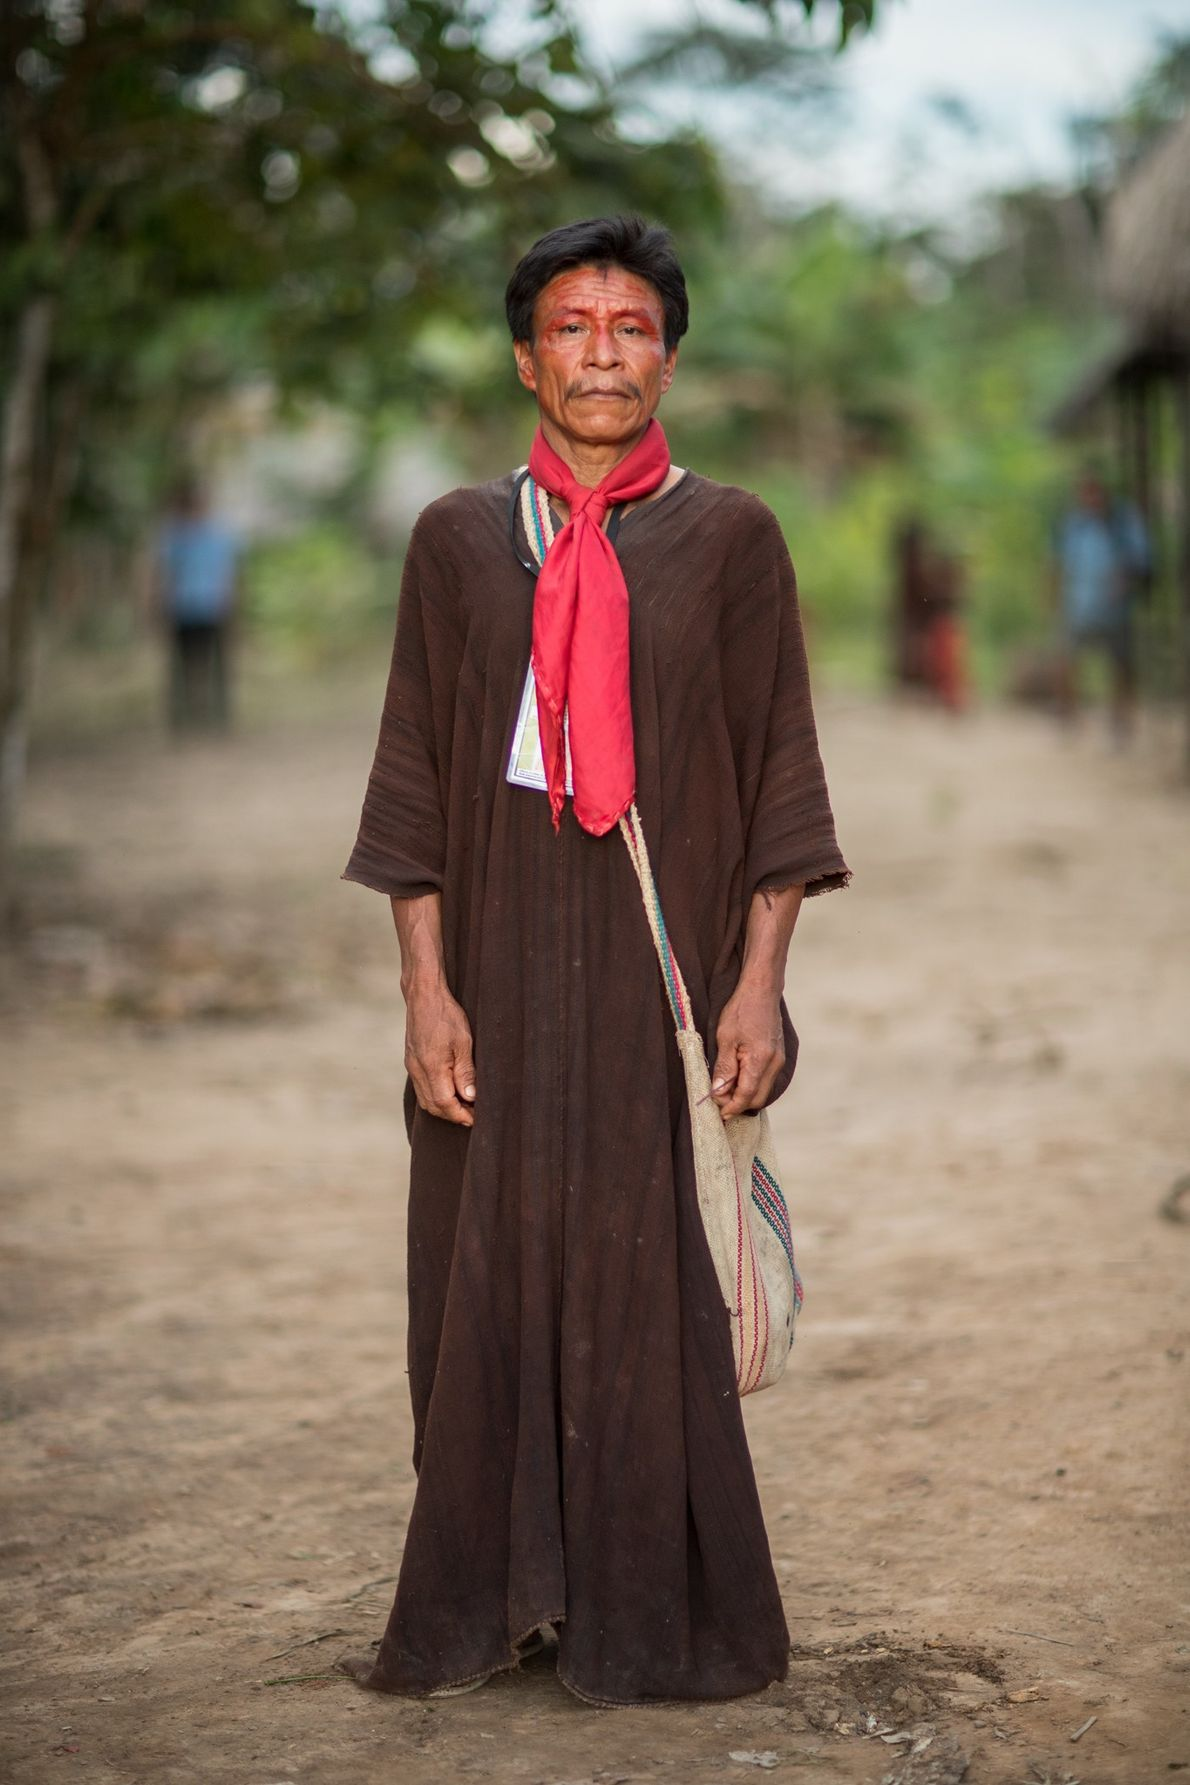 Mashco-Piro tribespeople killed Eduardo Aguilar Malengama's wife (Robaldo and Dicia's mother) in an attack that may ...